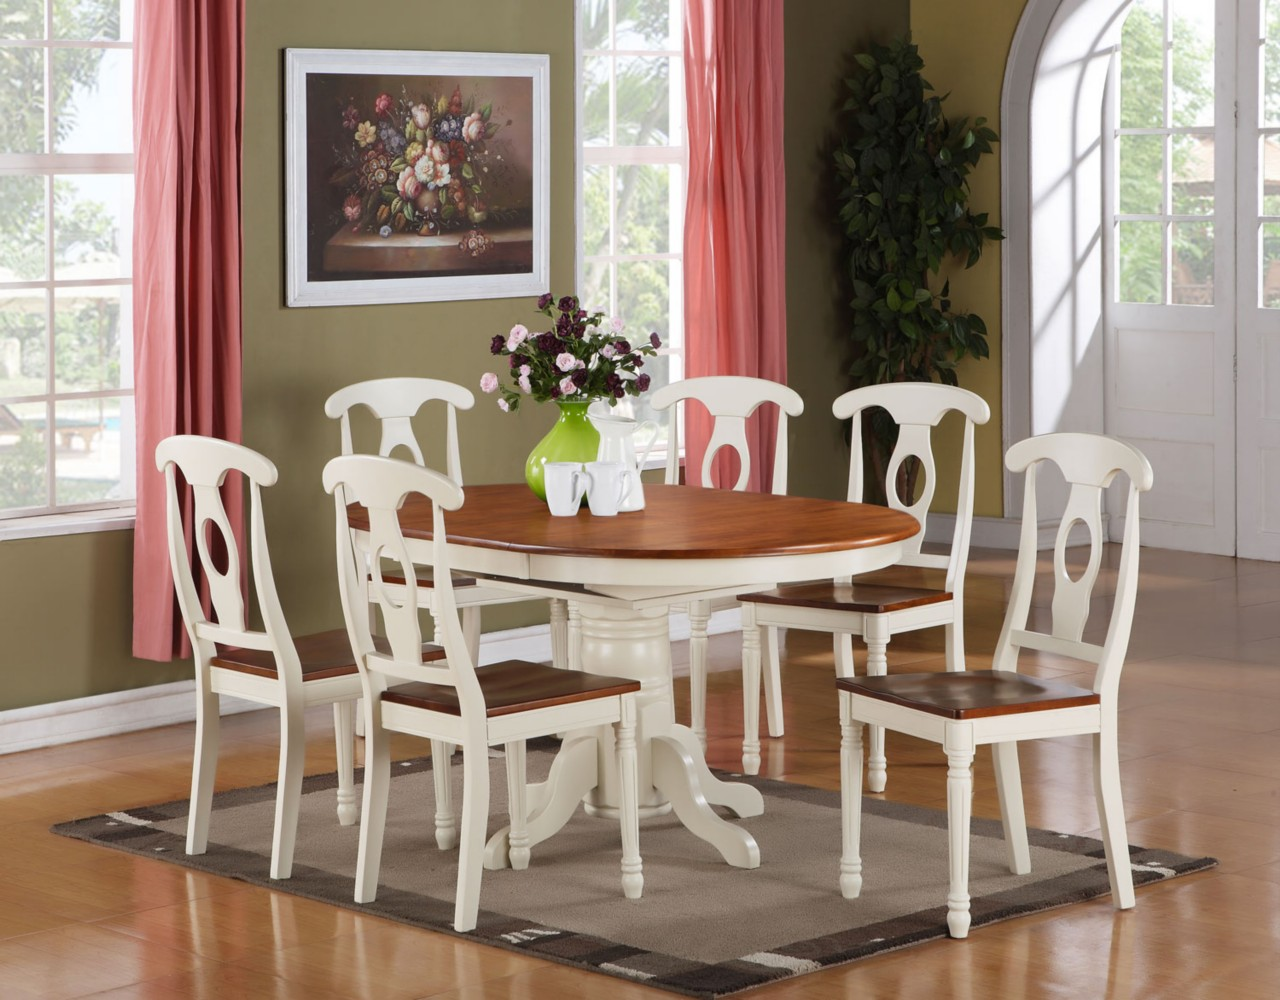 5pc oval dinette kitchen dining room set table with 4 for Small kitchen table with 4 chairs